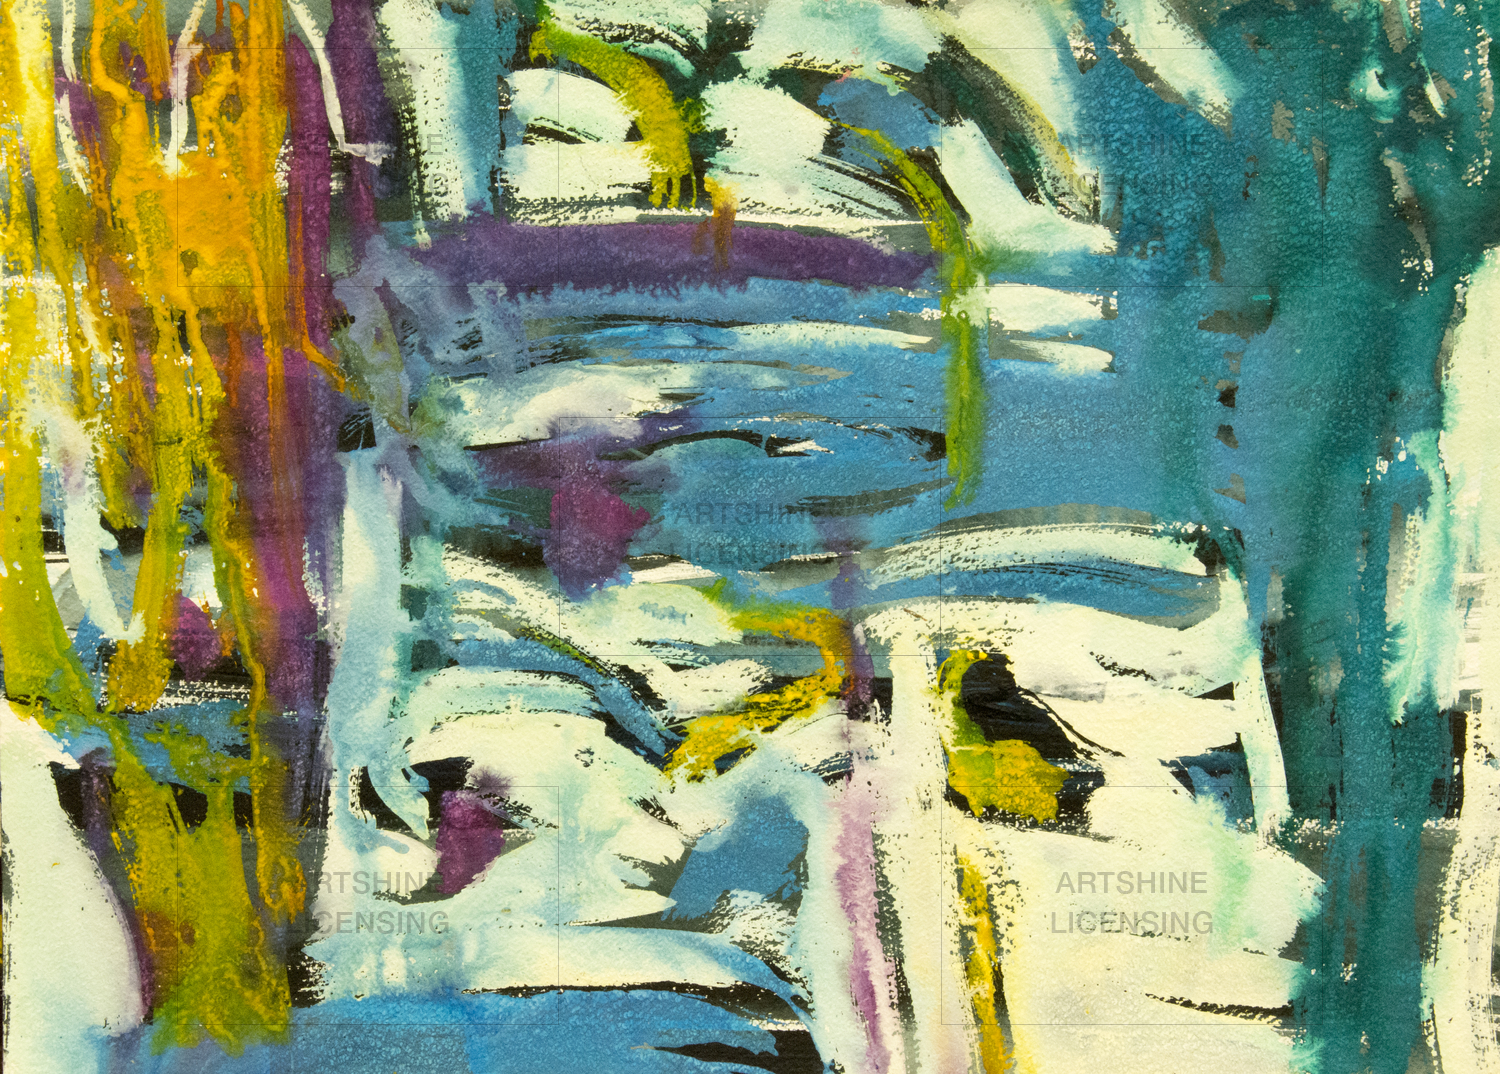 Abstract # 7 - Summer Love